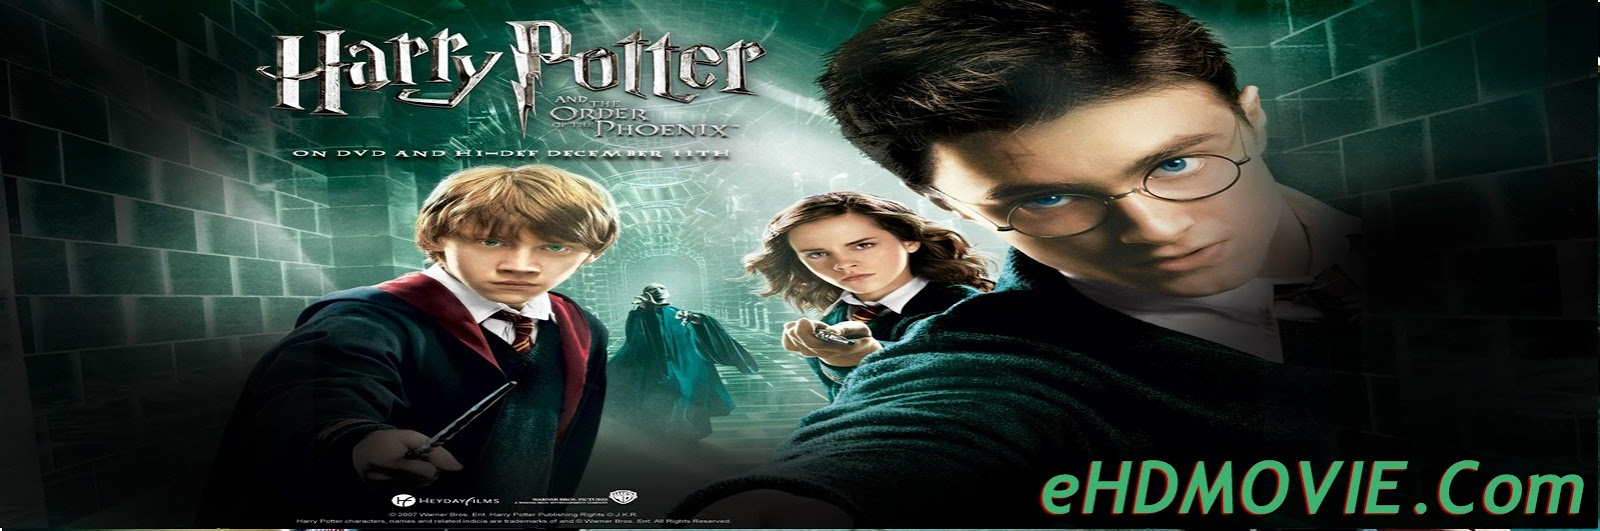 Harry Potter and the Order of the Phoenix 2007 Full Movie English 720p – 480p ORG BRRip 500MB - 1.2GB ESubs Free Download